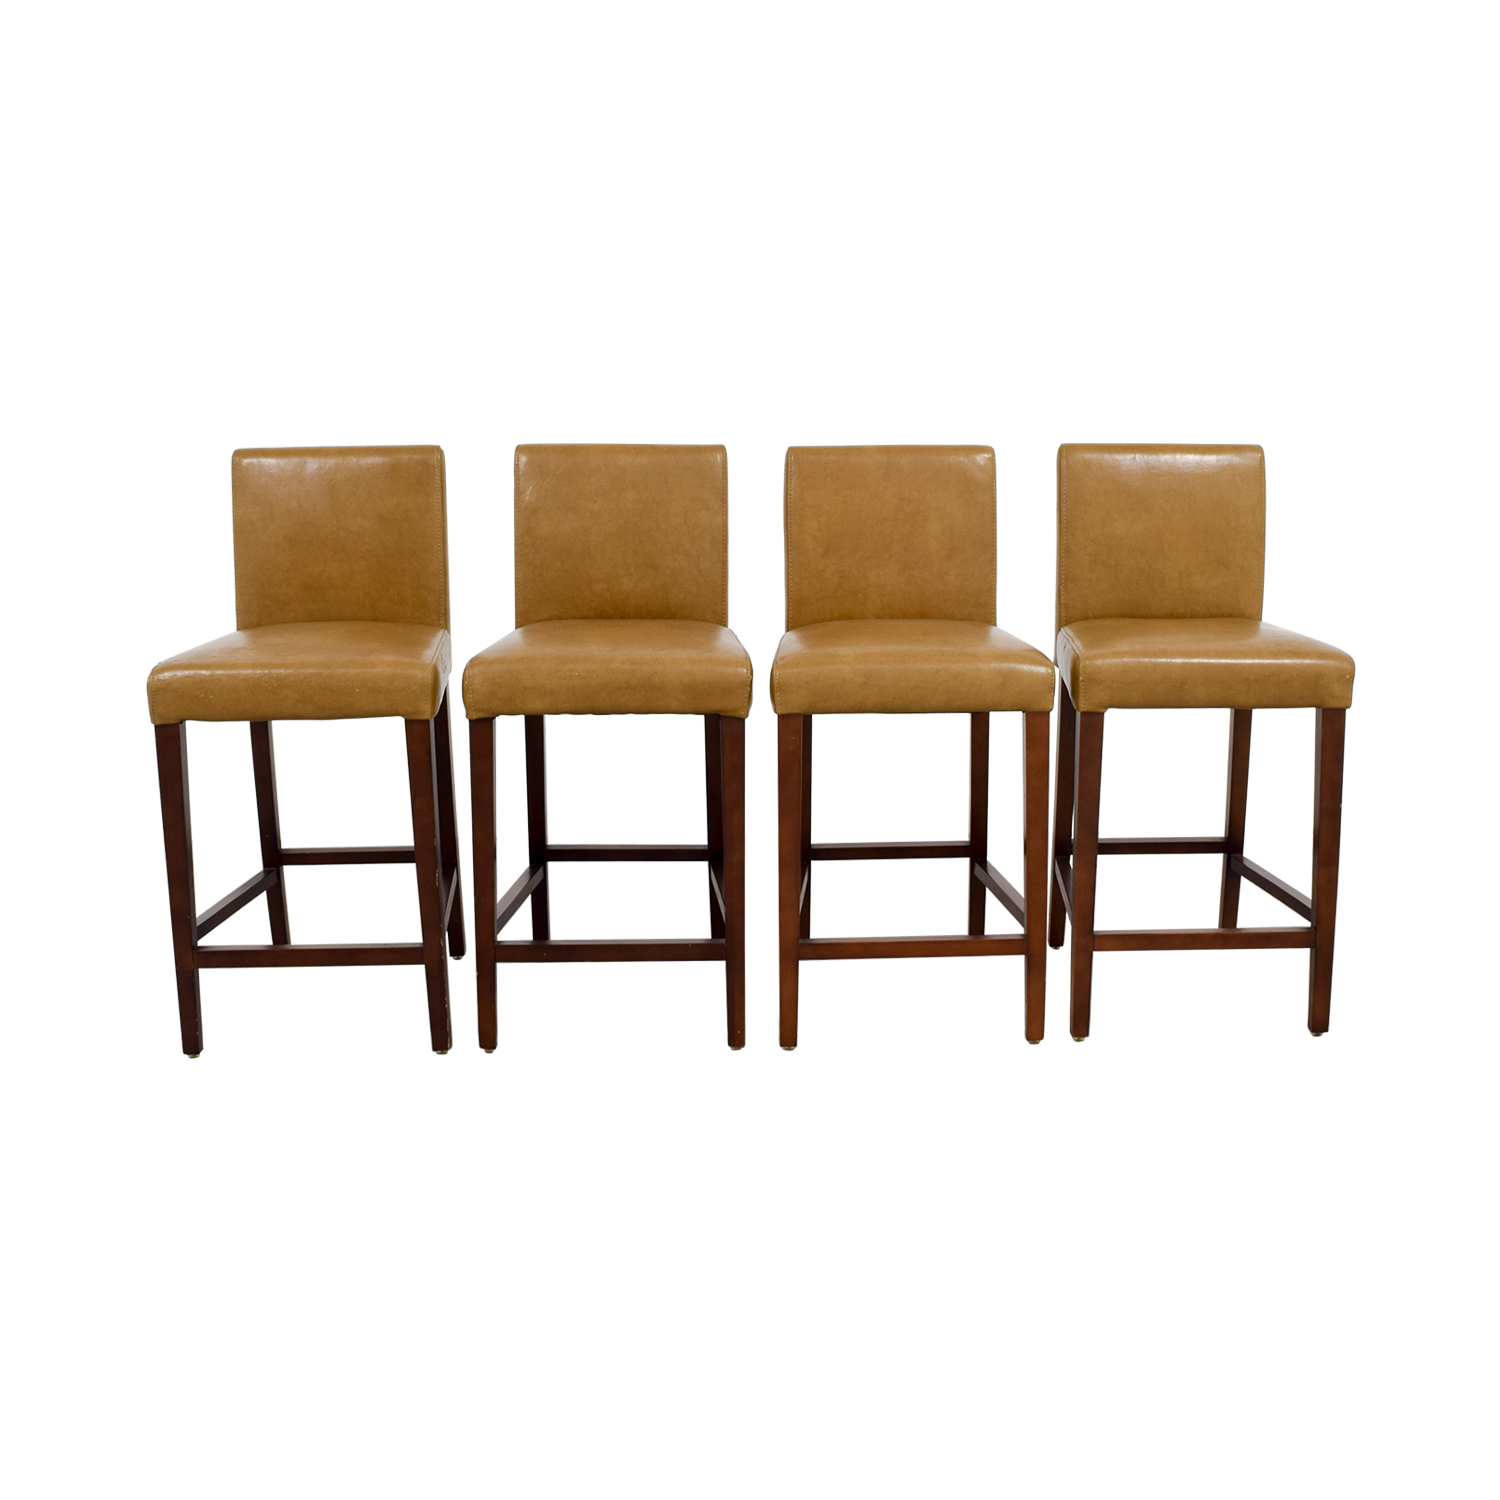 West Elm West Elm Faux Leather Stools